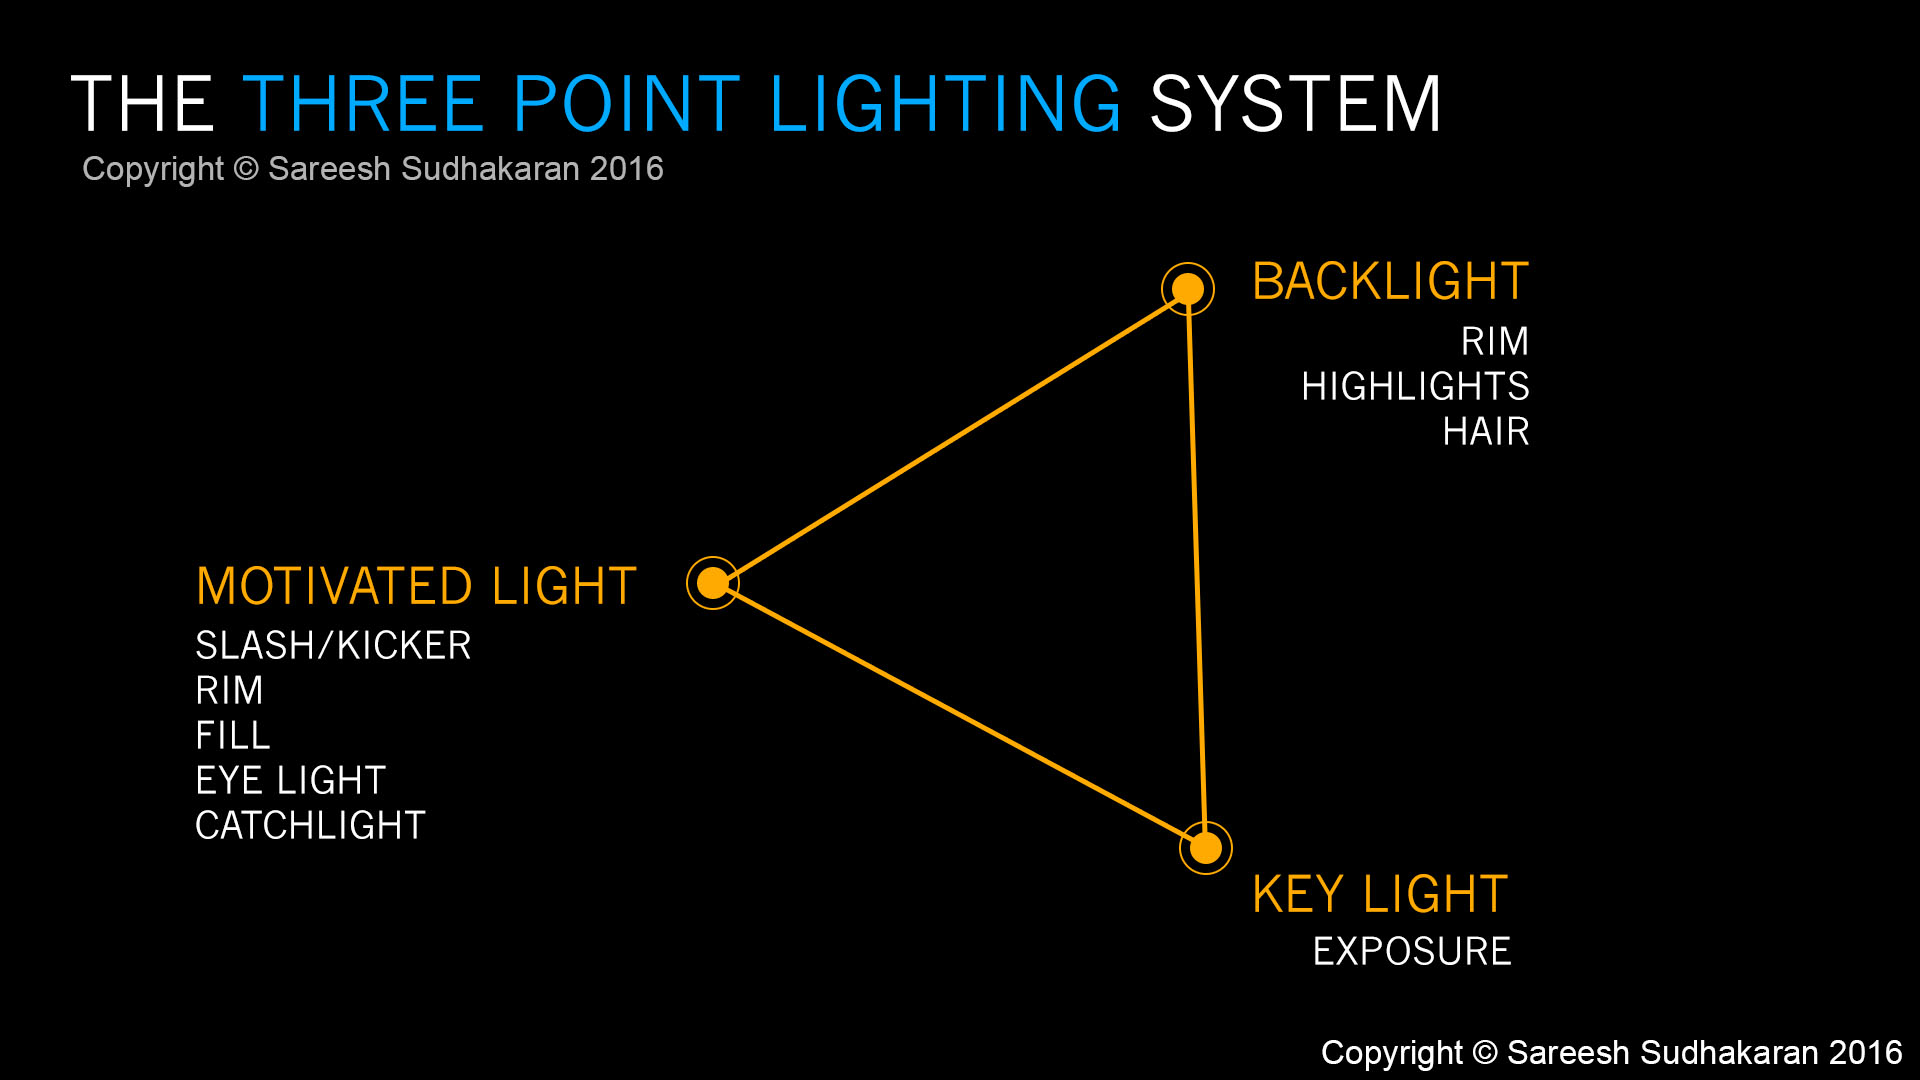 ThreePointLightingSystem